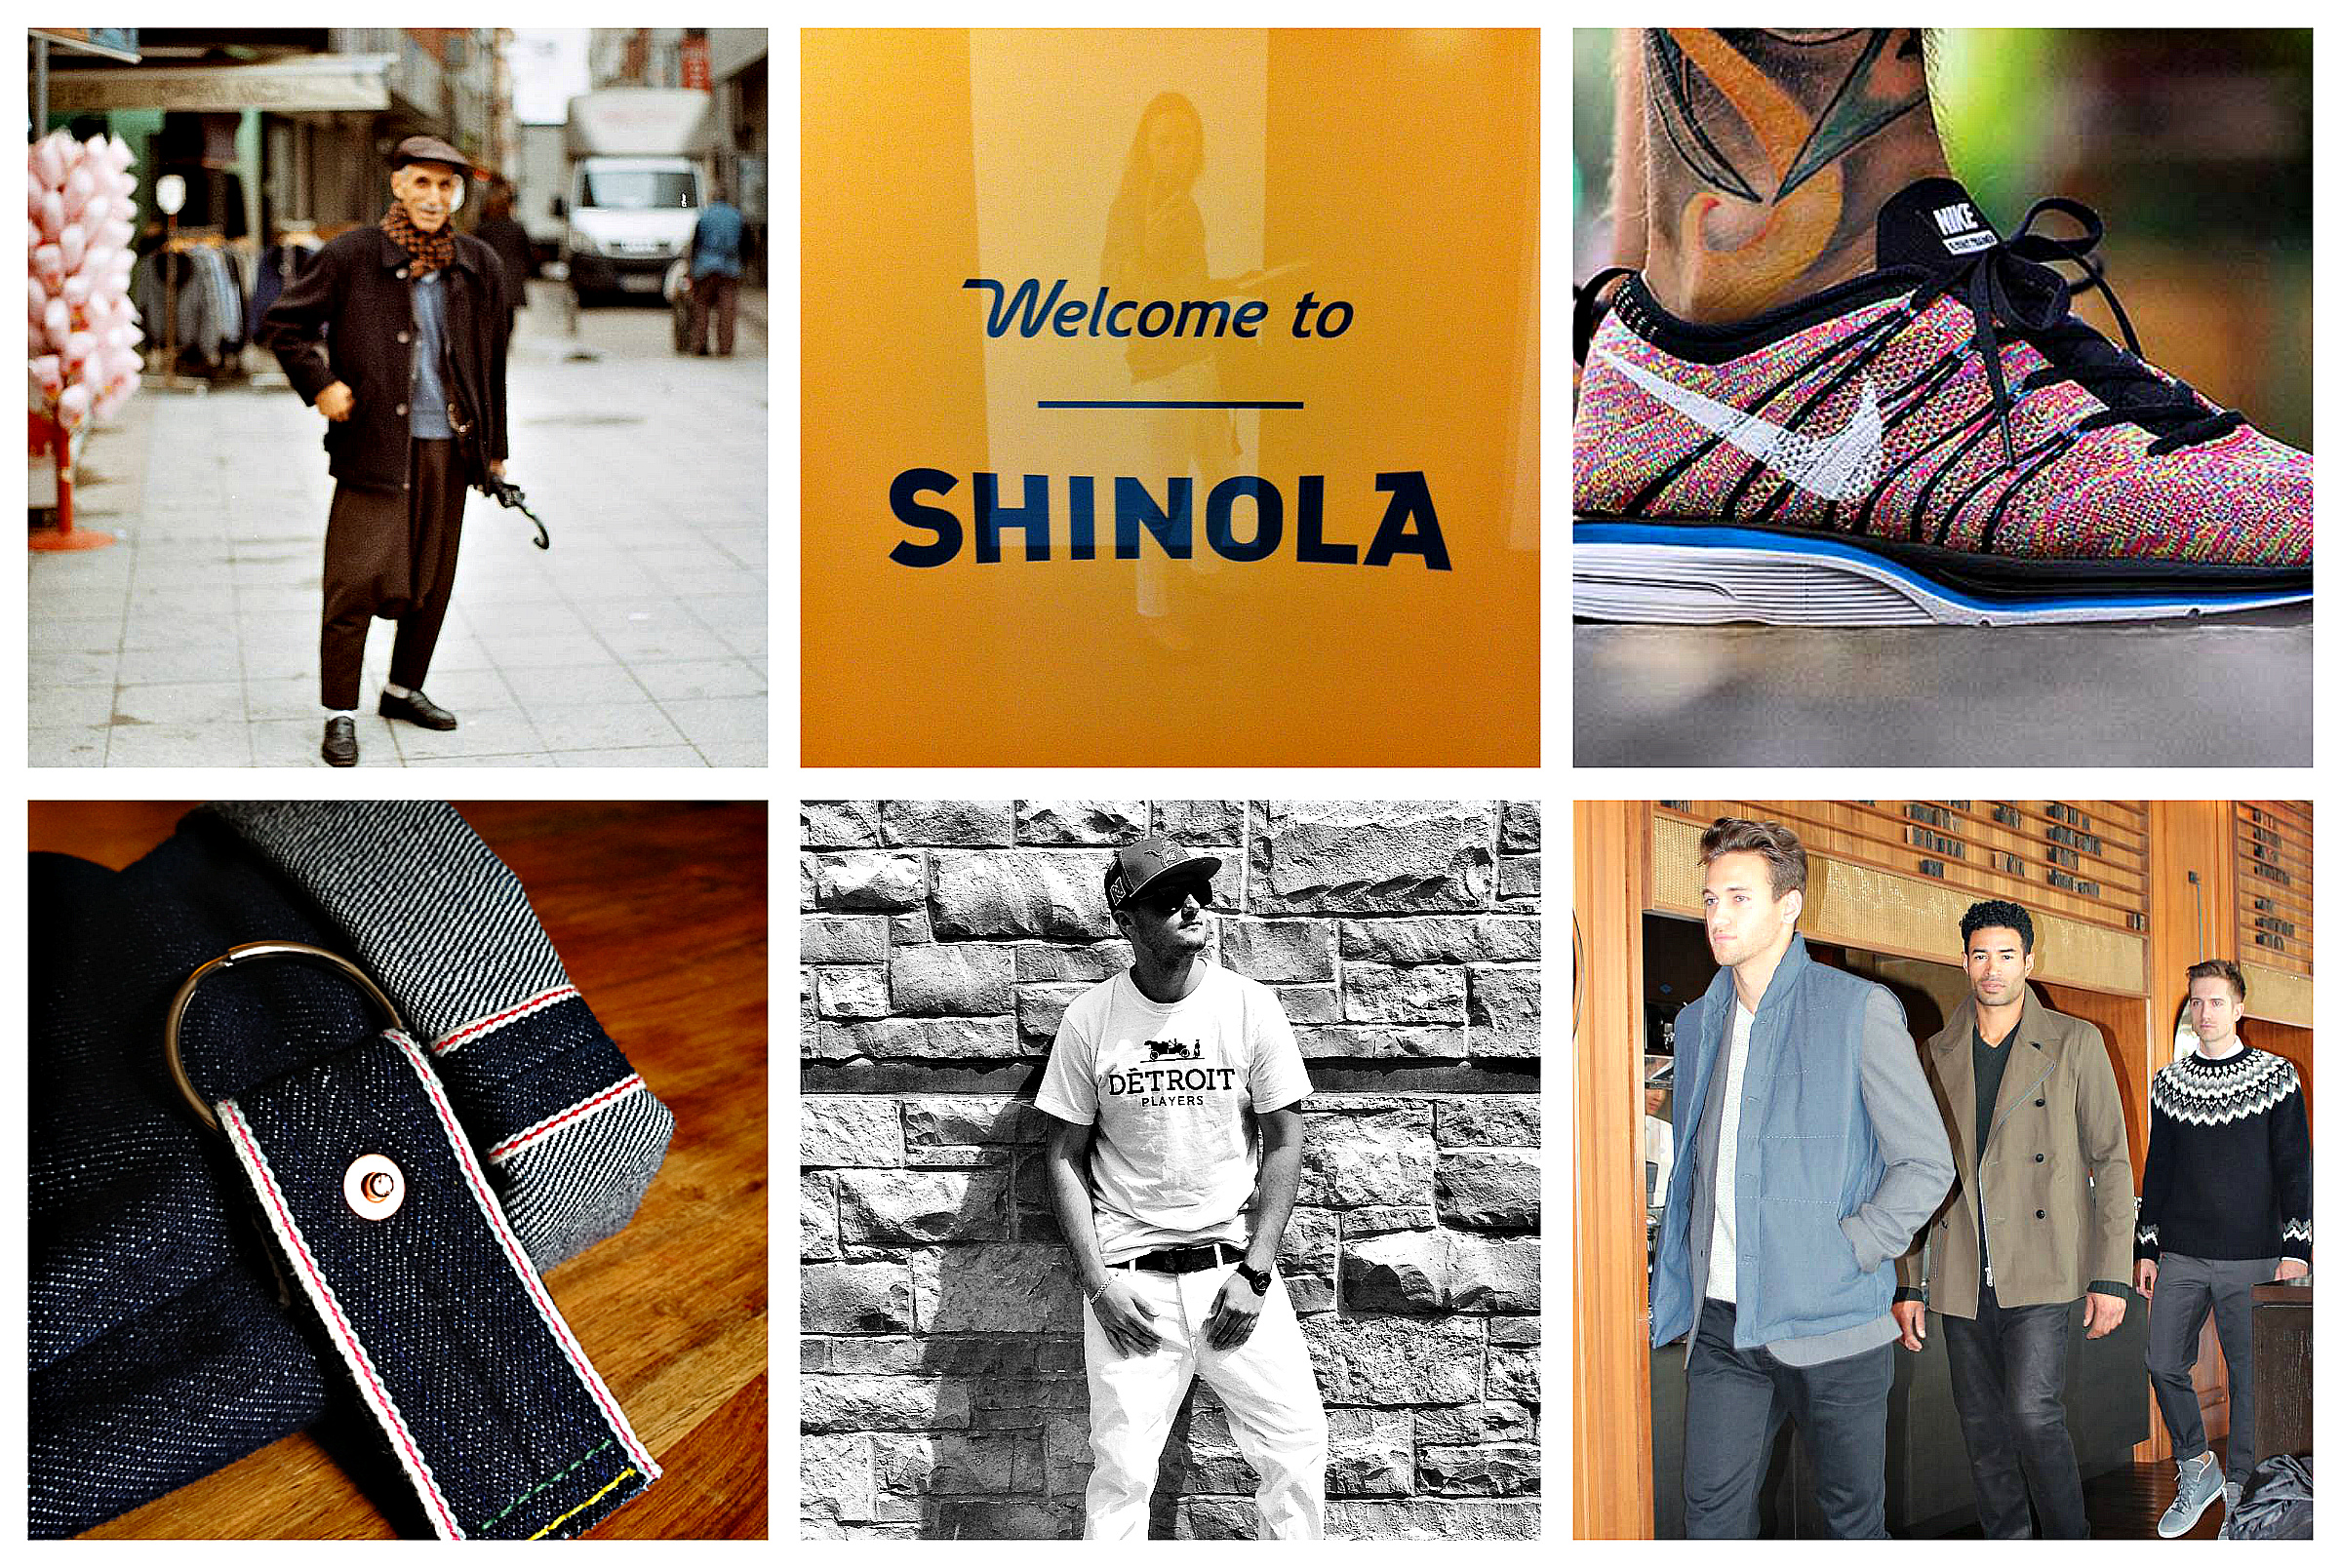 1 // gentleman, Istanbul. from atlin's upcoming book  s  hape of an ear  2 //my visit to shinola hq 3 // high snobiety's perfect capture of the nike flyknit+ multicolor 4 // The 16 yr old behind unwashed denim  5 //briggs goldberg's détroit players tee6 // fall13 preview with vince